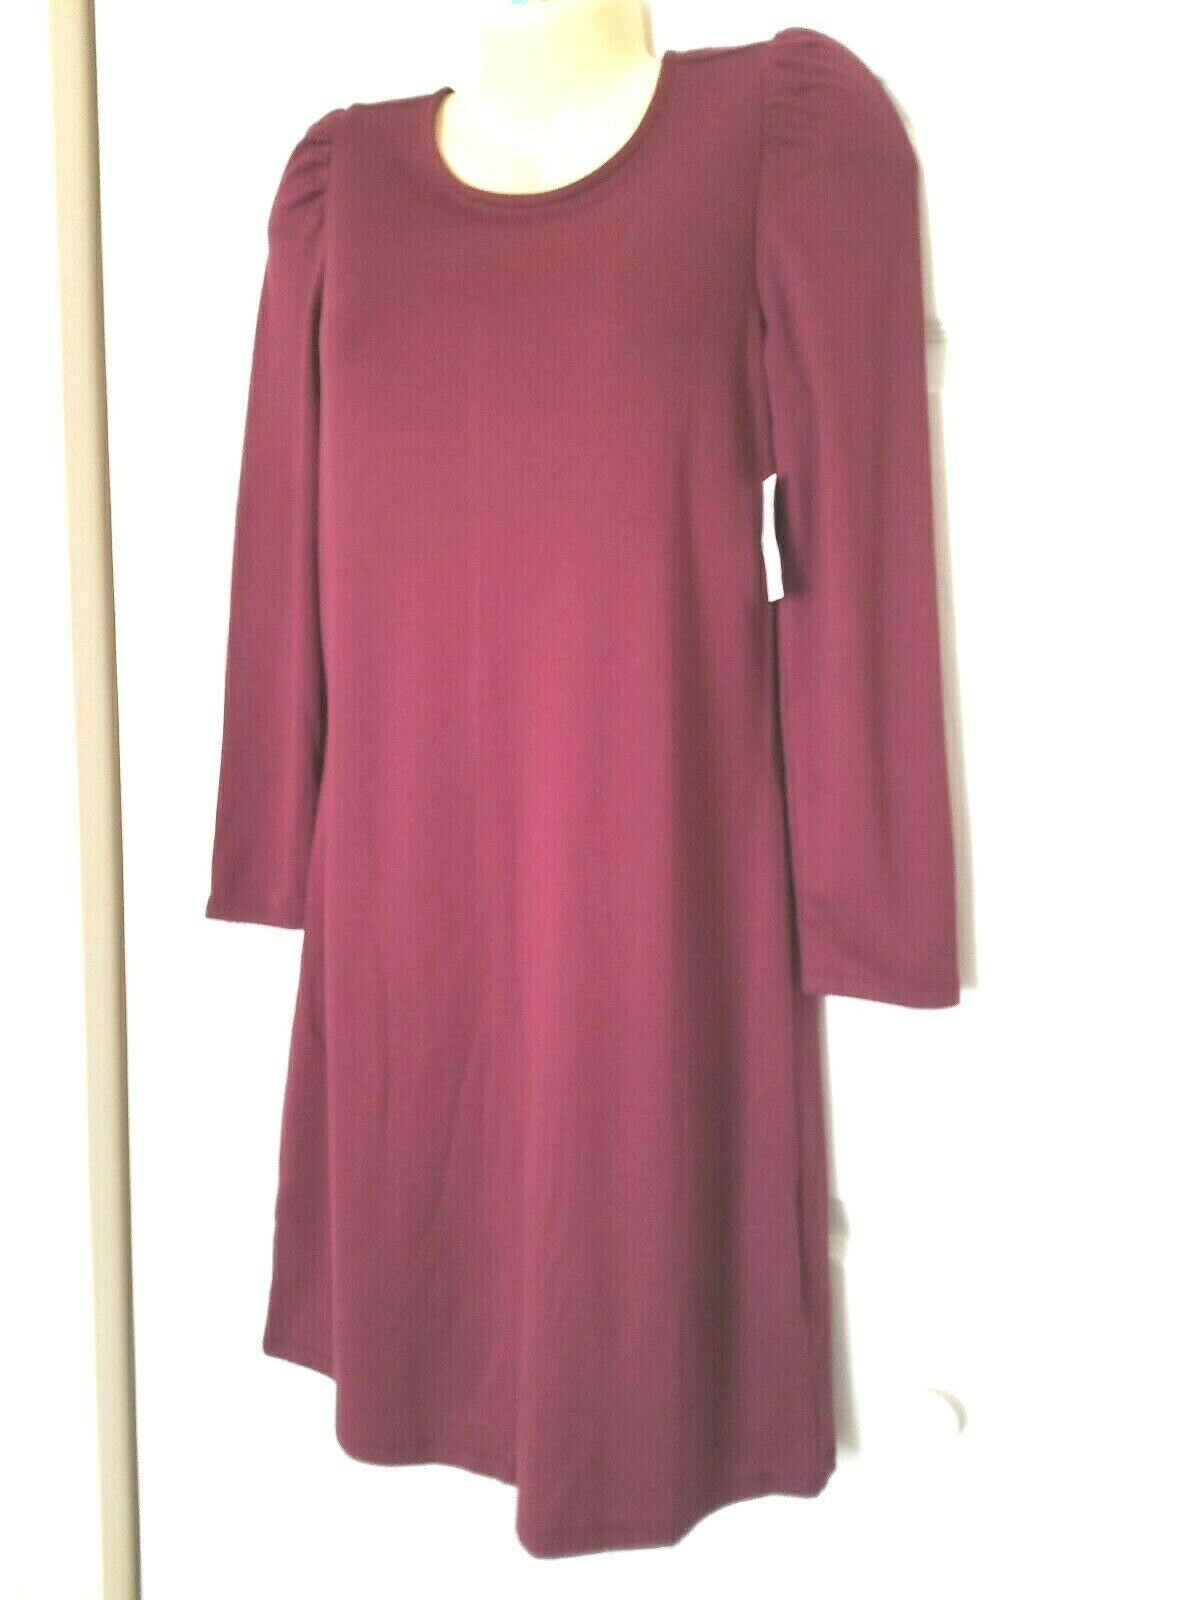 OLD NAVY Size Small Ponte Knit Shift Dress Maroon Long Sleeves NWT